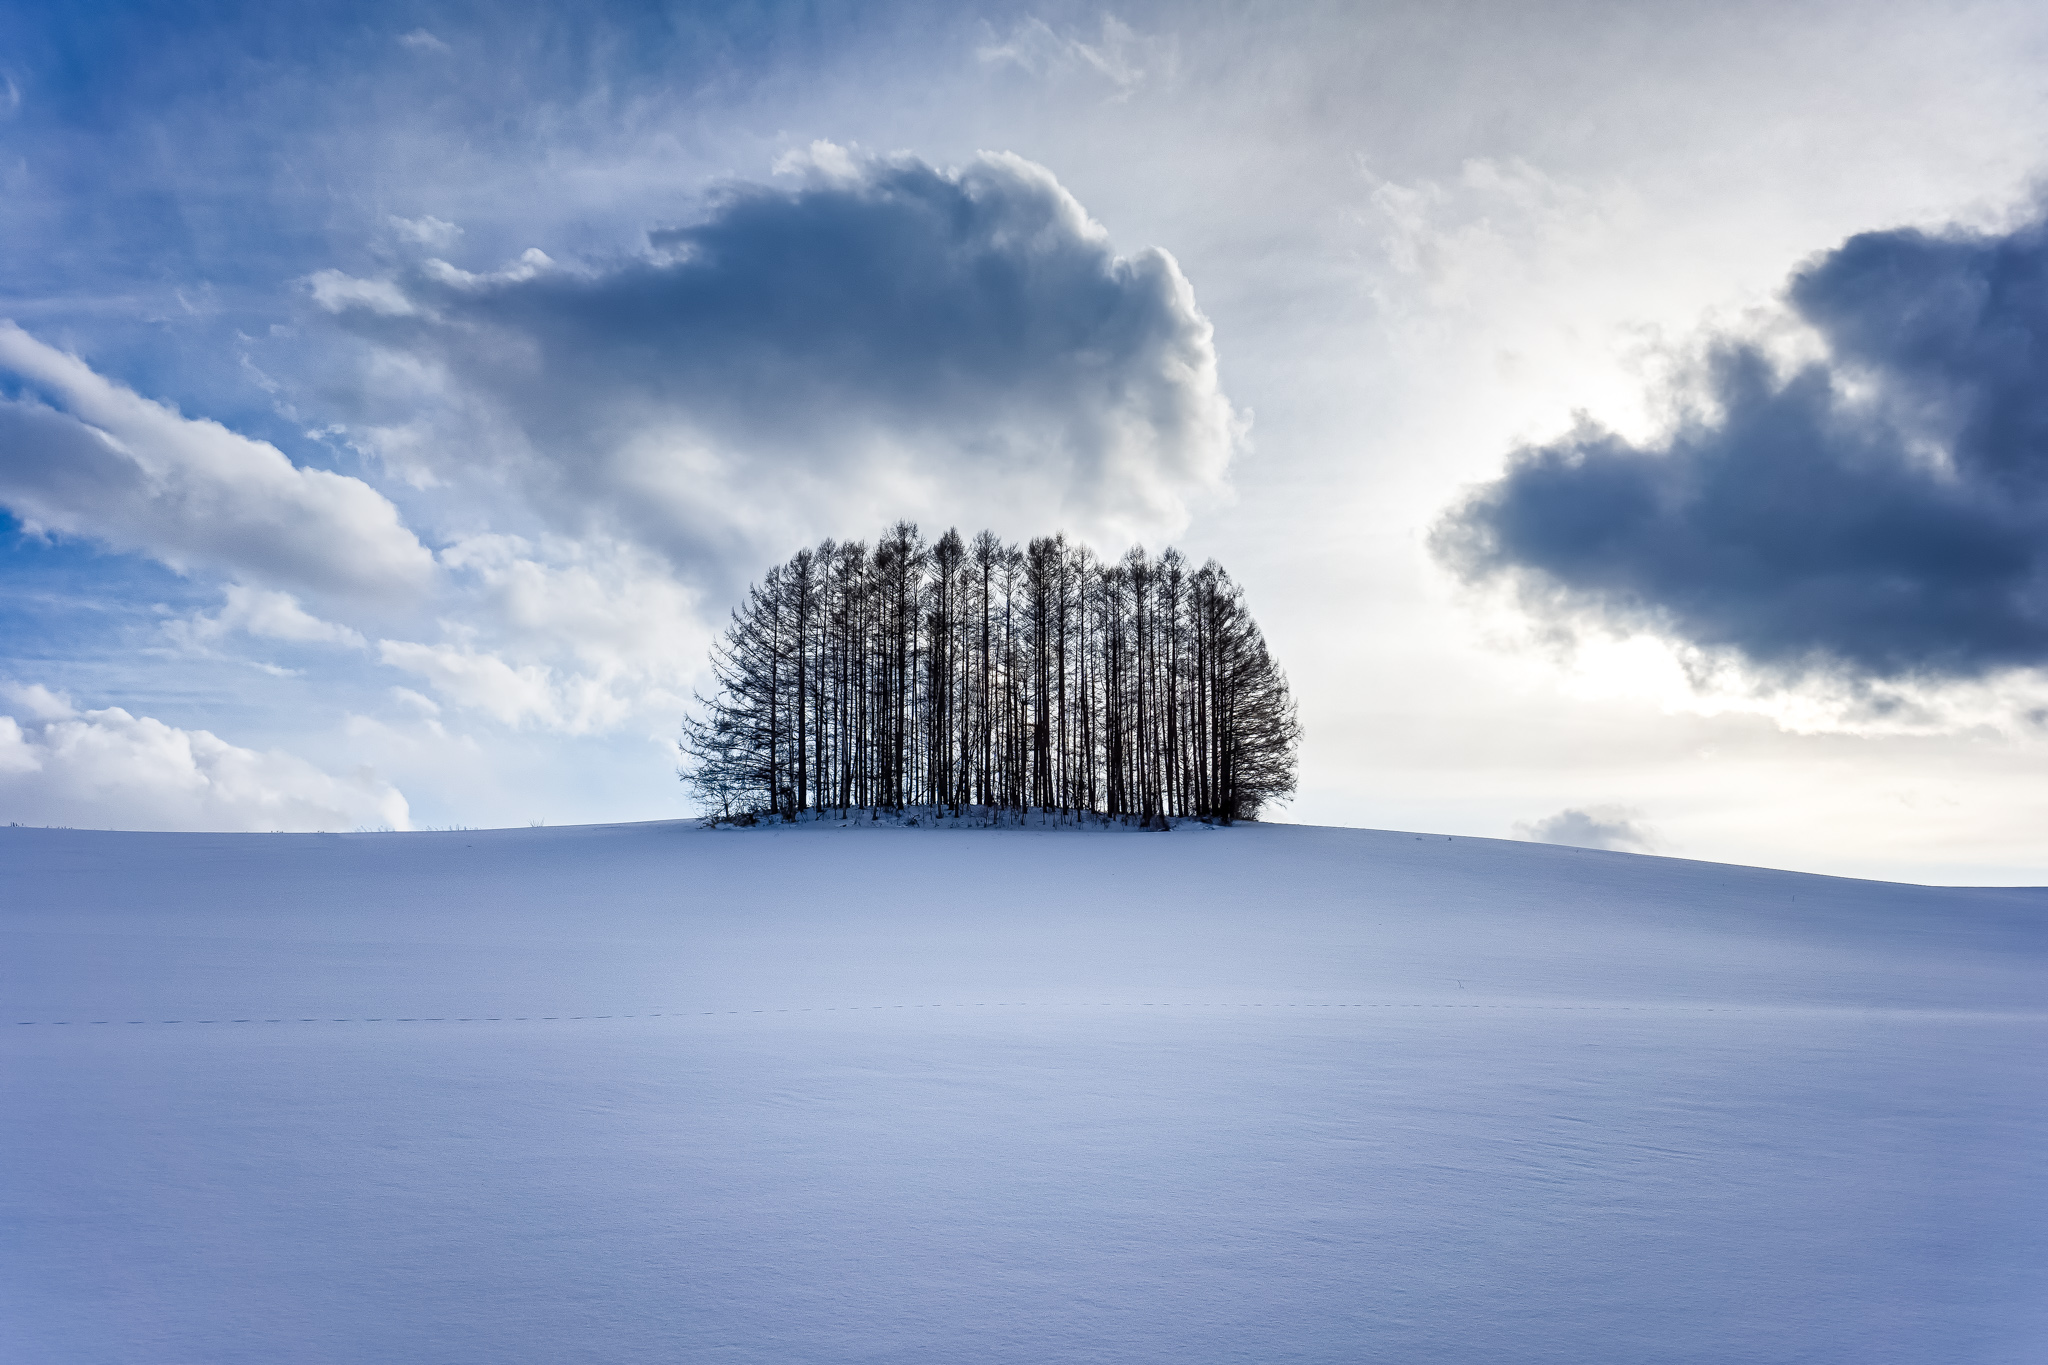 tips for snow photography